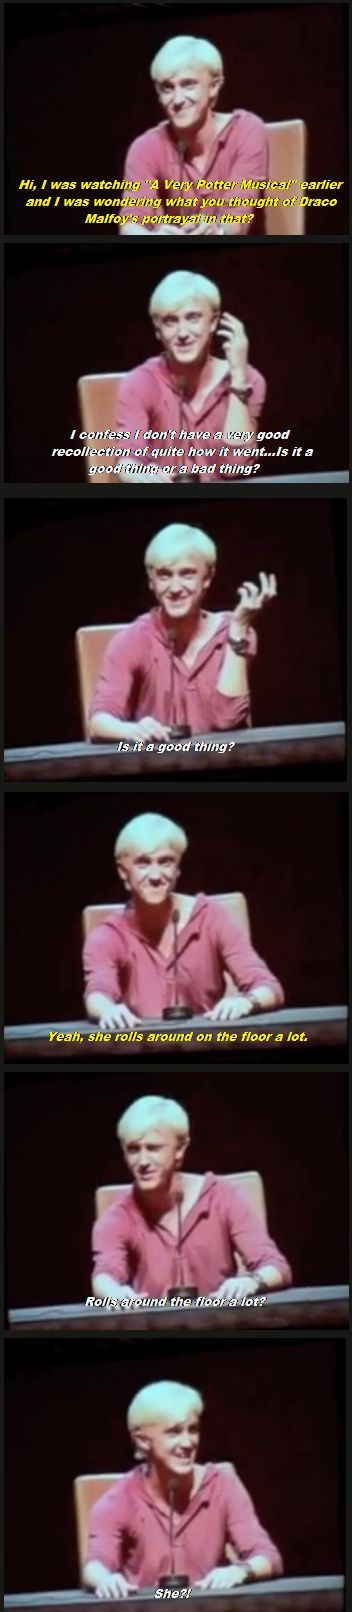 Tom Felton's reaction to A Very Potter Musical...love this!